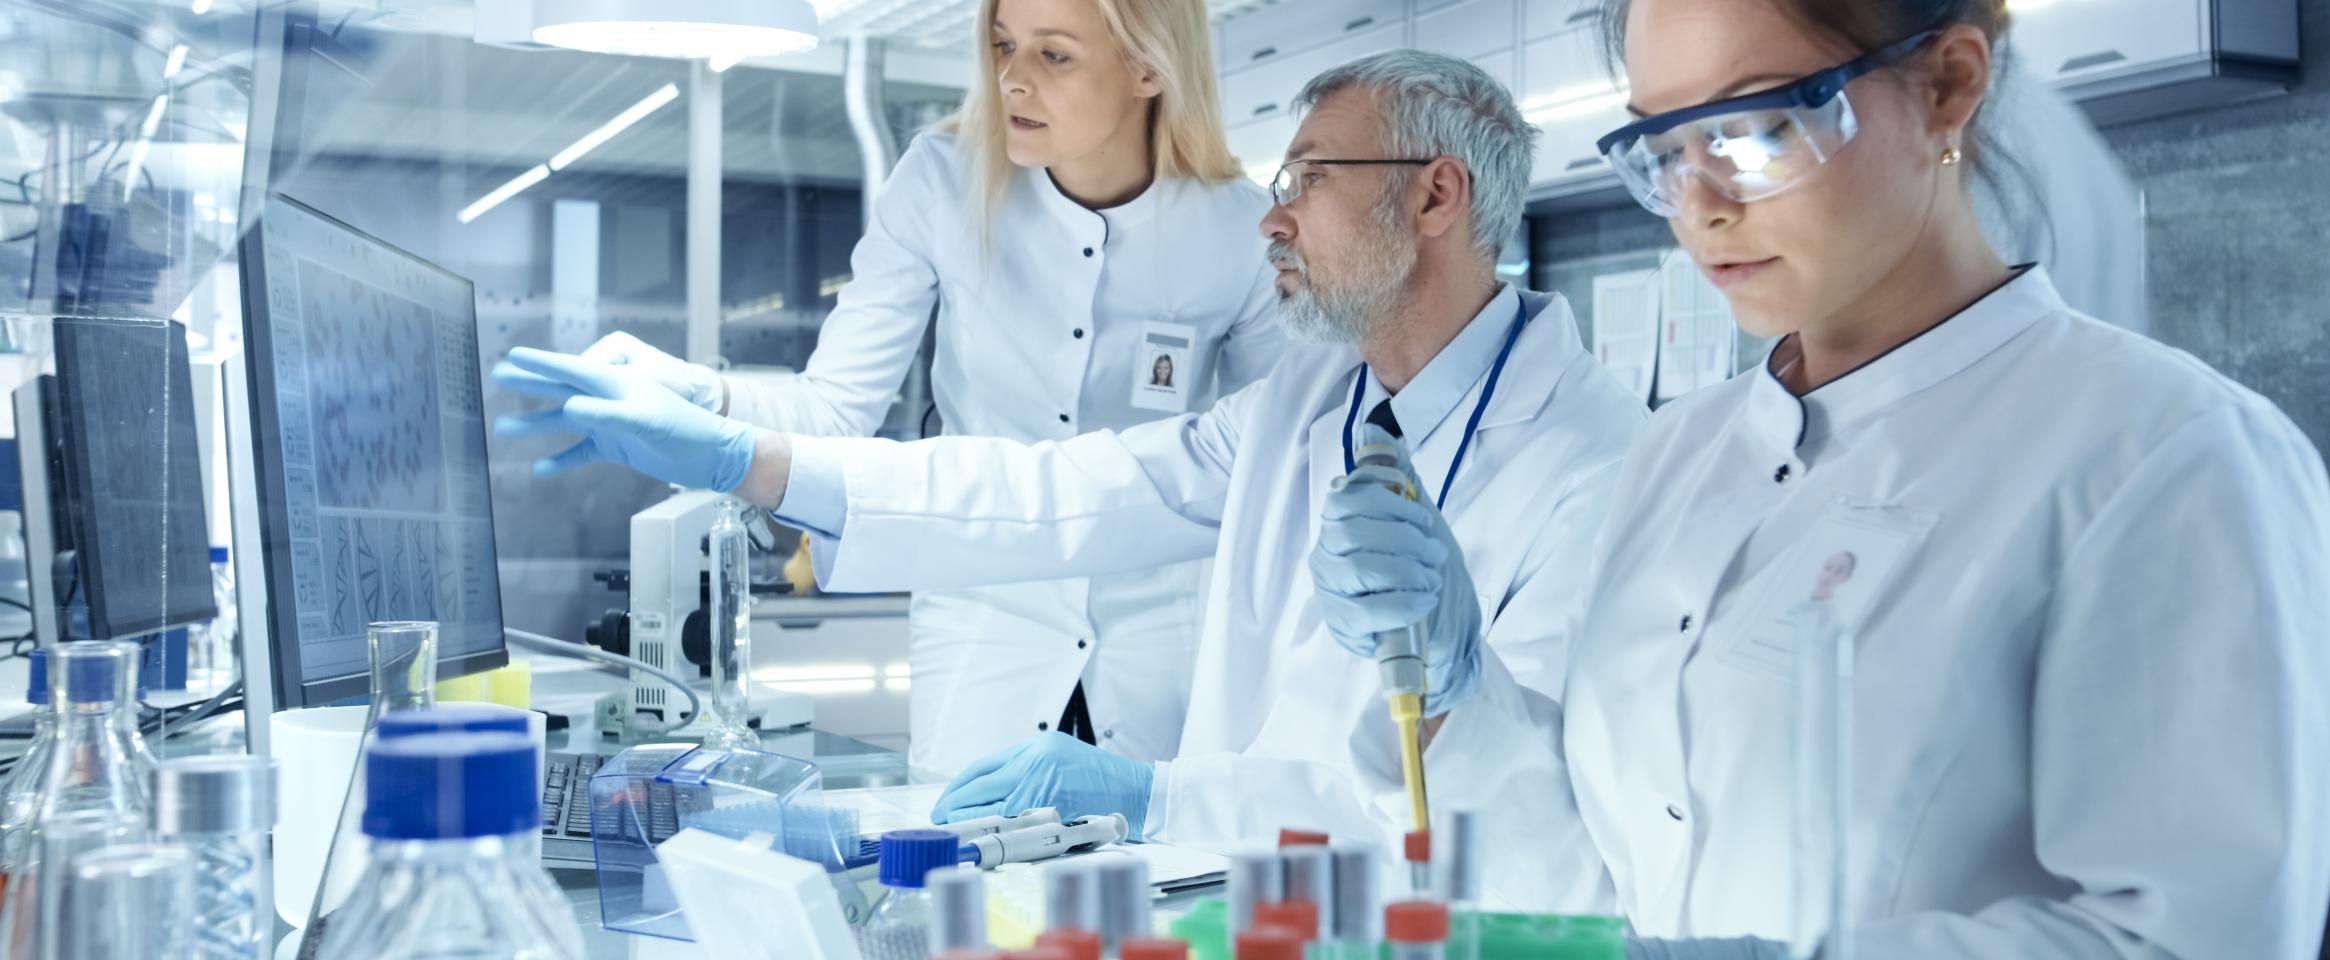 As science transforms at a quickening pace, graduate students are left facing decades-old structural problems that seem to disproportionately favor everyone but them. Credit: Shutterstock